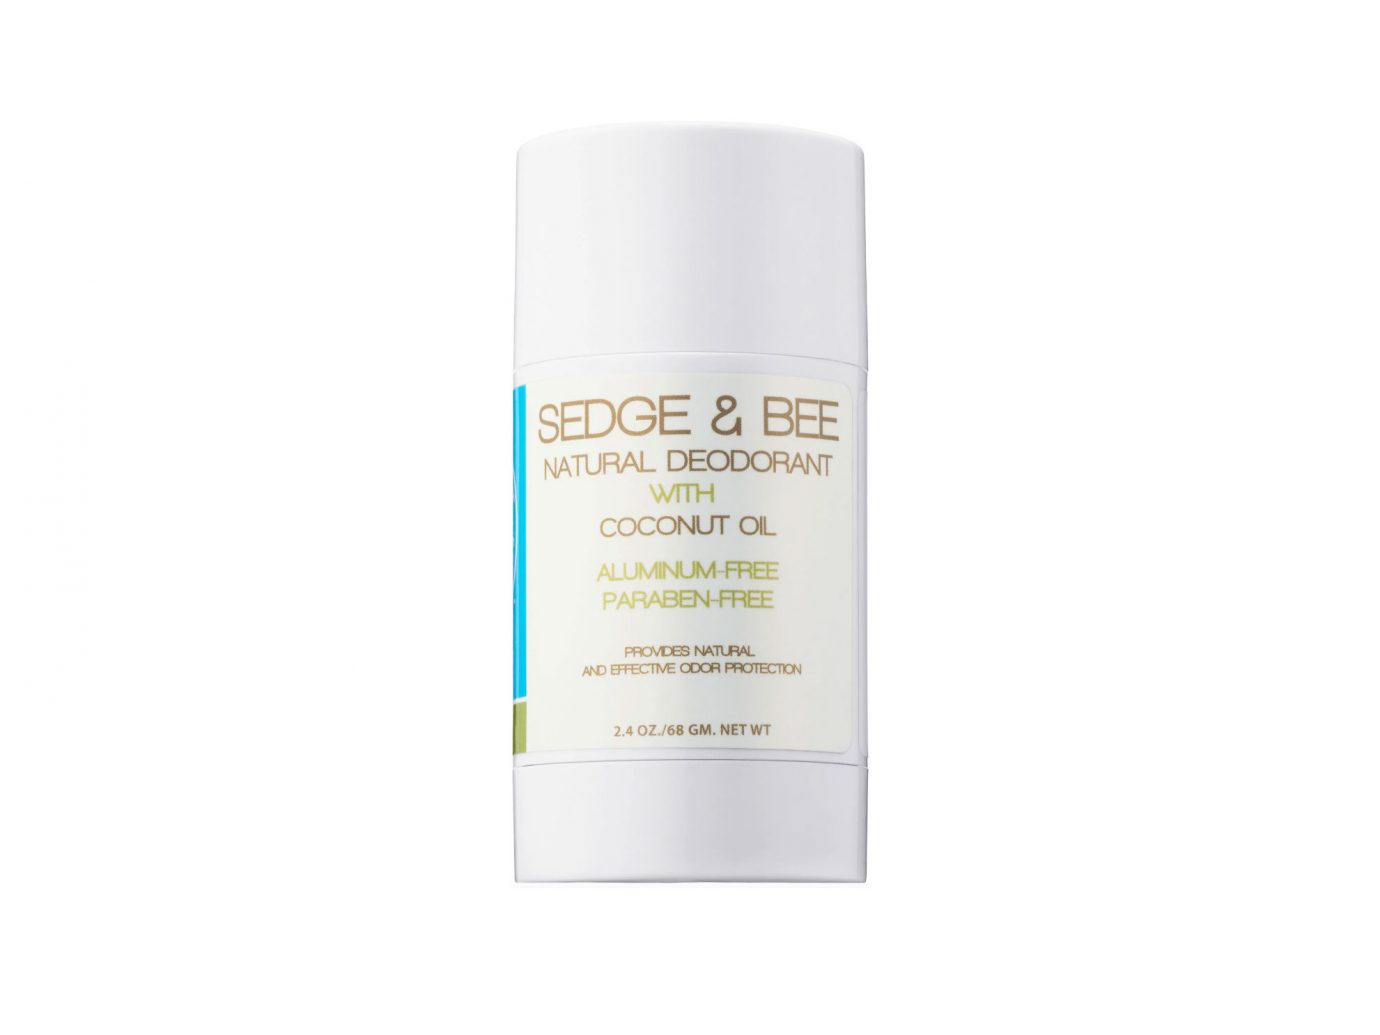 QHEMET BIOLOGICS Sedge & Bee Natural Deodorant with Coconut Oil